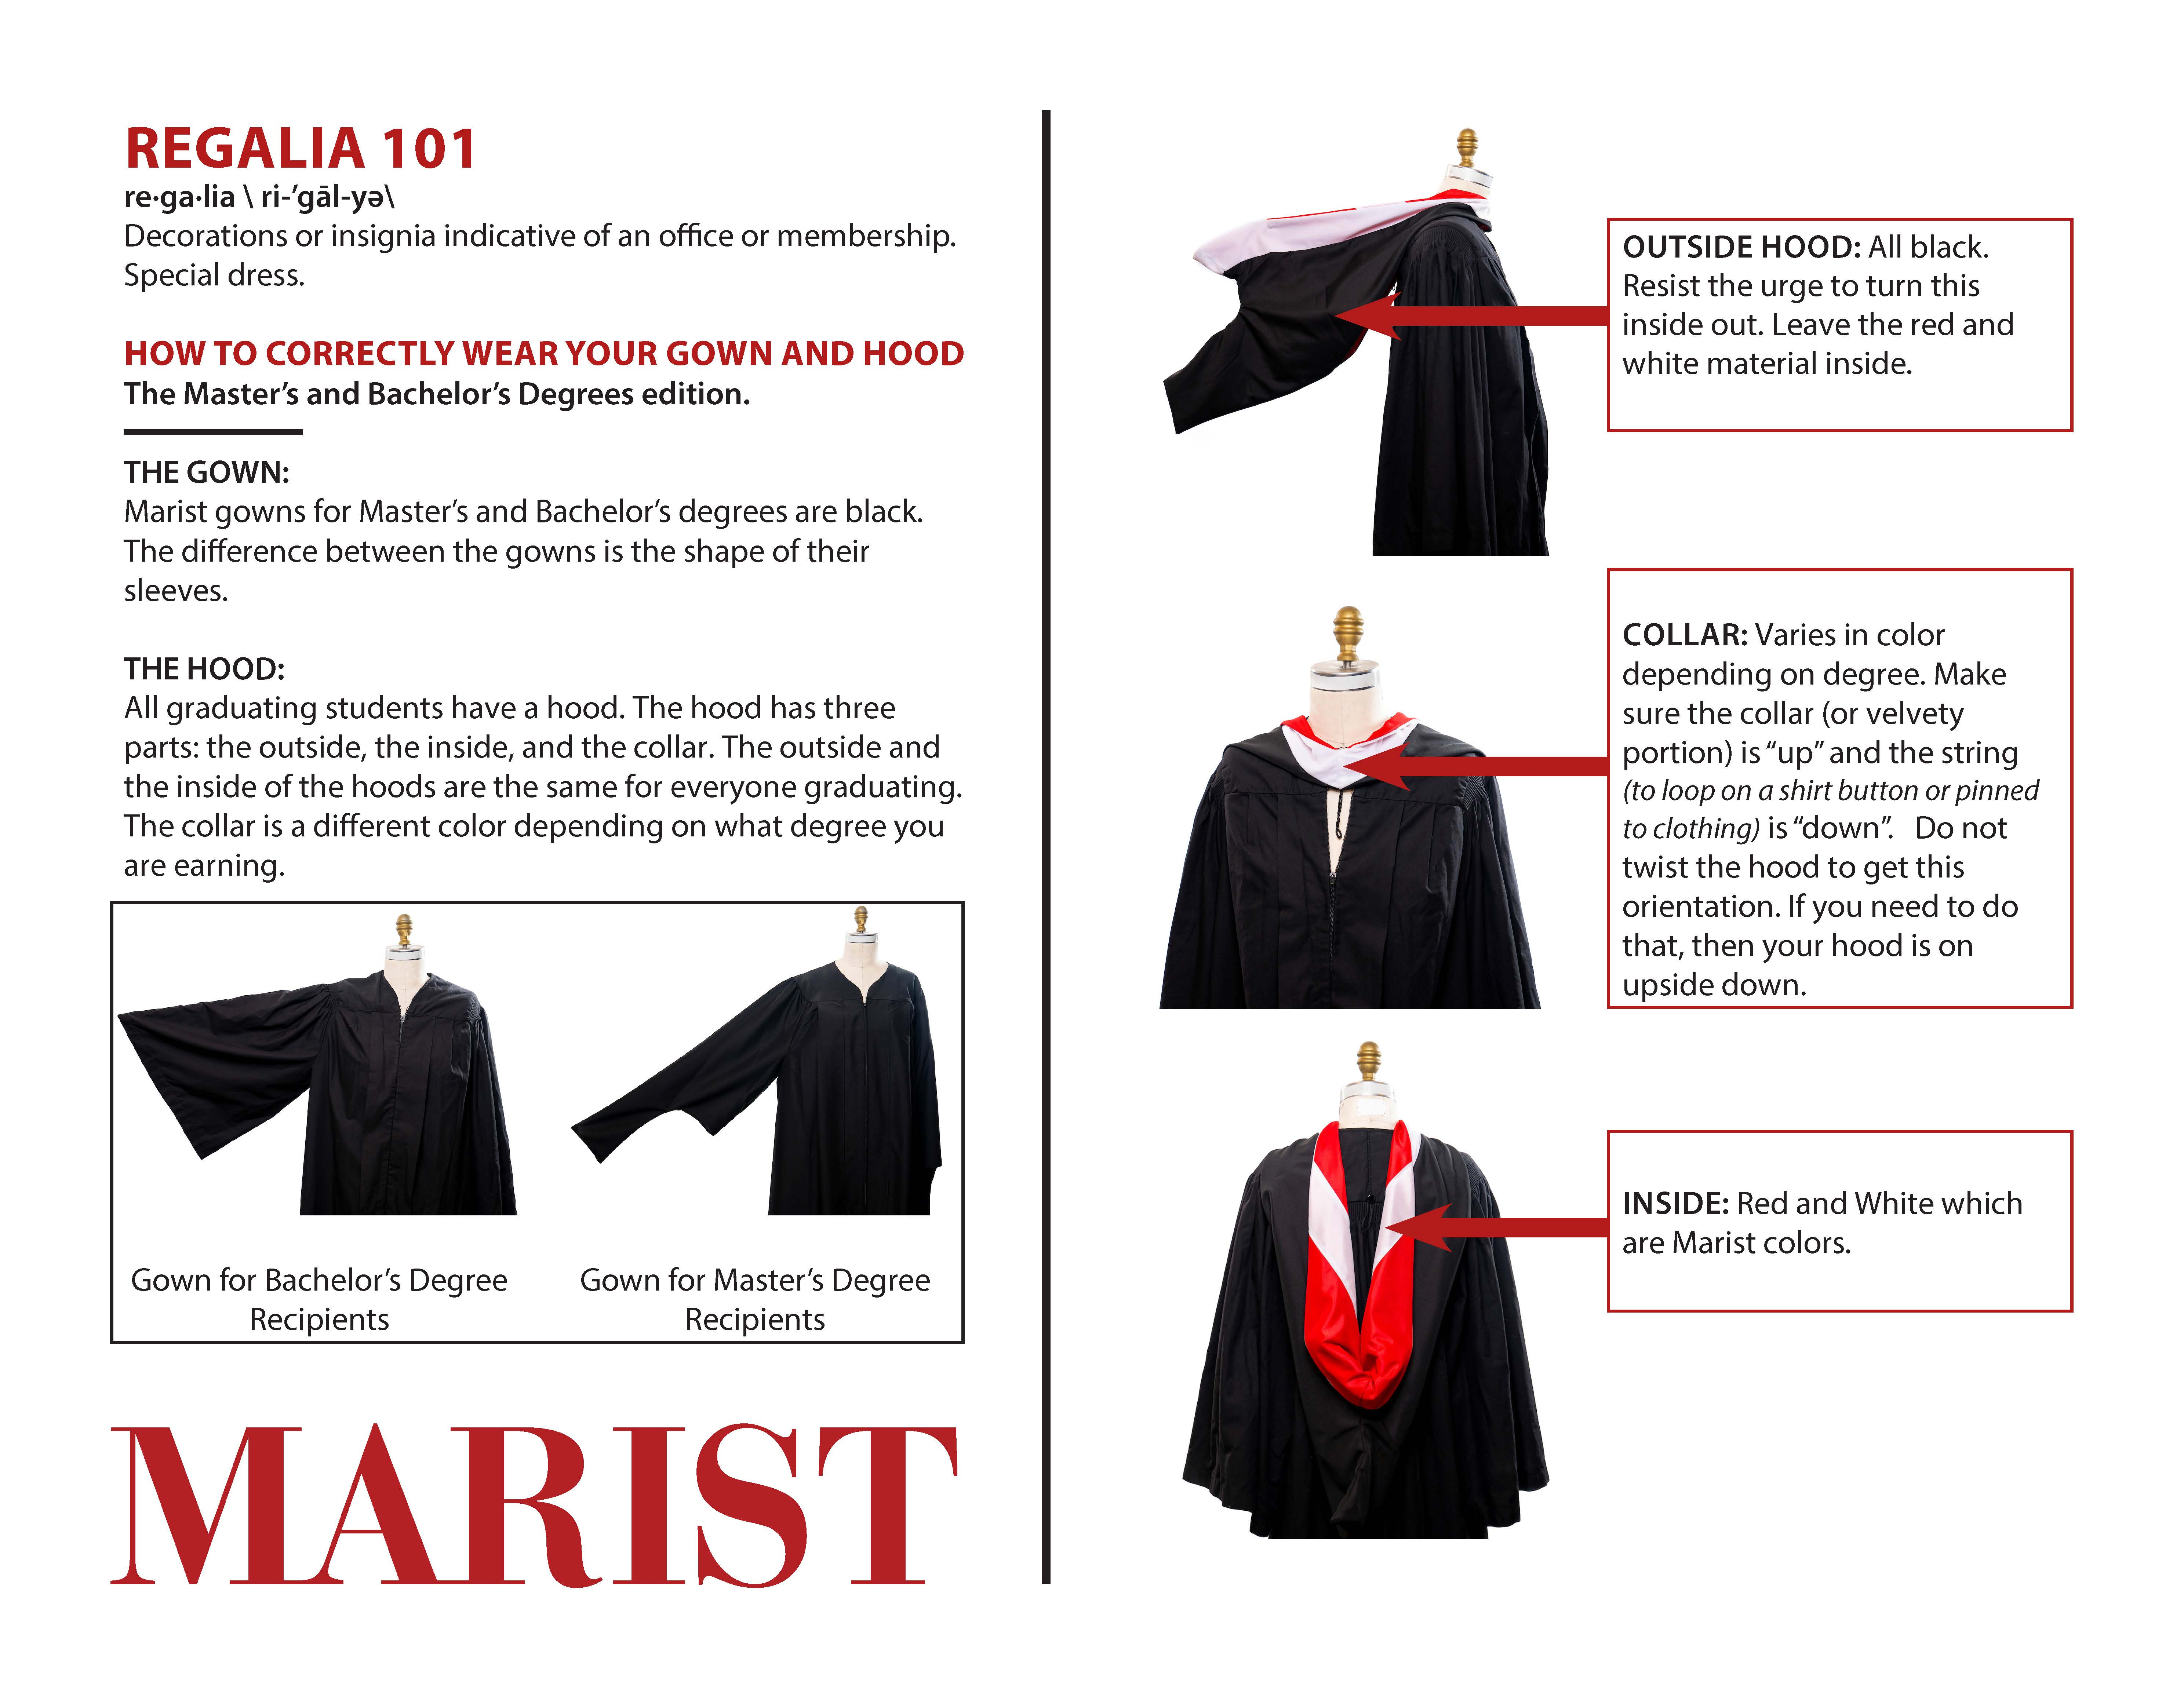 """REGALIA 101: Decorations or insignia indicative of an office or membership. Special dress.HOW TO CORRECTLY WEAR YOUR GOWN AND HOOD The Master's and Bachelor's Degrees edition.THE GOWN:Marist gowns for Master's and Bachelor's degrees are black. The difference between the gowns is the shape of their sleeves.THE HOOD:All graduating students have a hood. The hood has three parts: the outside, the inside, and the collar. The outside and the inside of the hoods are the same for everyone graduating. The collar is a different color depending on what degree you are earning. OUTSIDE HOOD: All black. Resist the urge to turn this inside out. Leave the red and white material inside. COLLAR: Varies in color depending on degree. Make sure the collar (or velvety portion) is """"up"""" and the string (to loop on a shirt button or pinned to clothing) is """"down"""". Do not twist the hood to get this orientation. If you need to do that, then your hood is on upside down. INSIDE: Red and White which are Marist colors."""